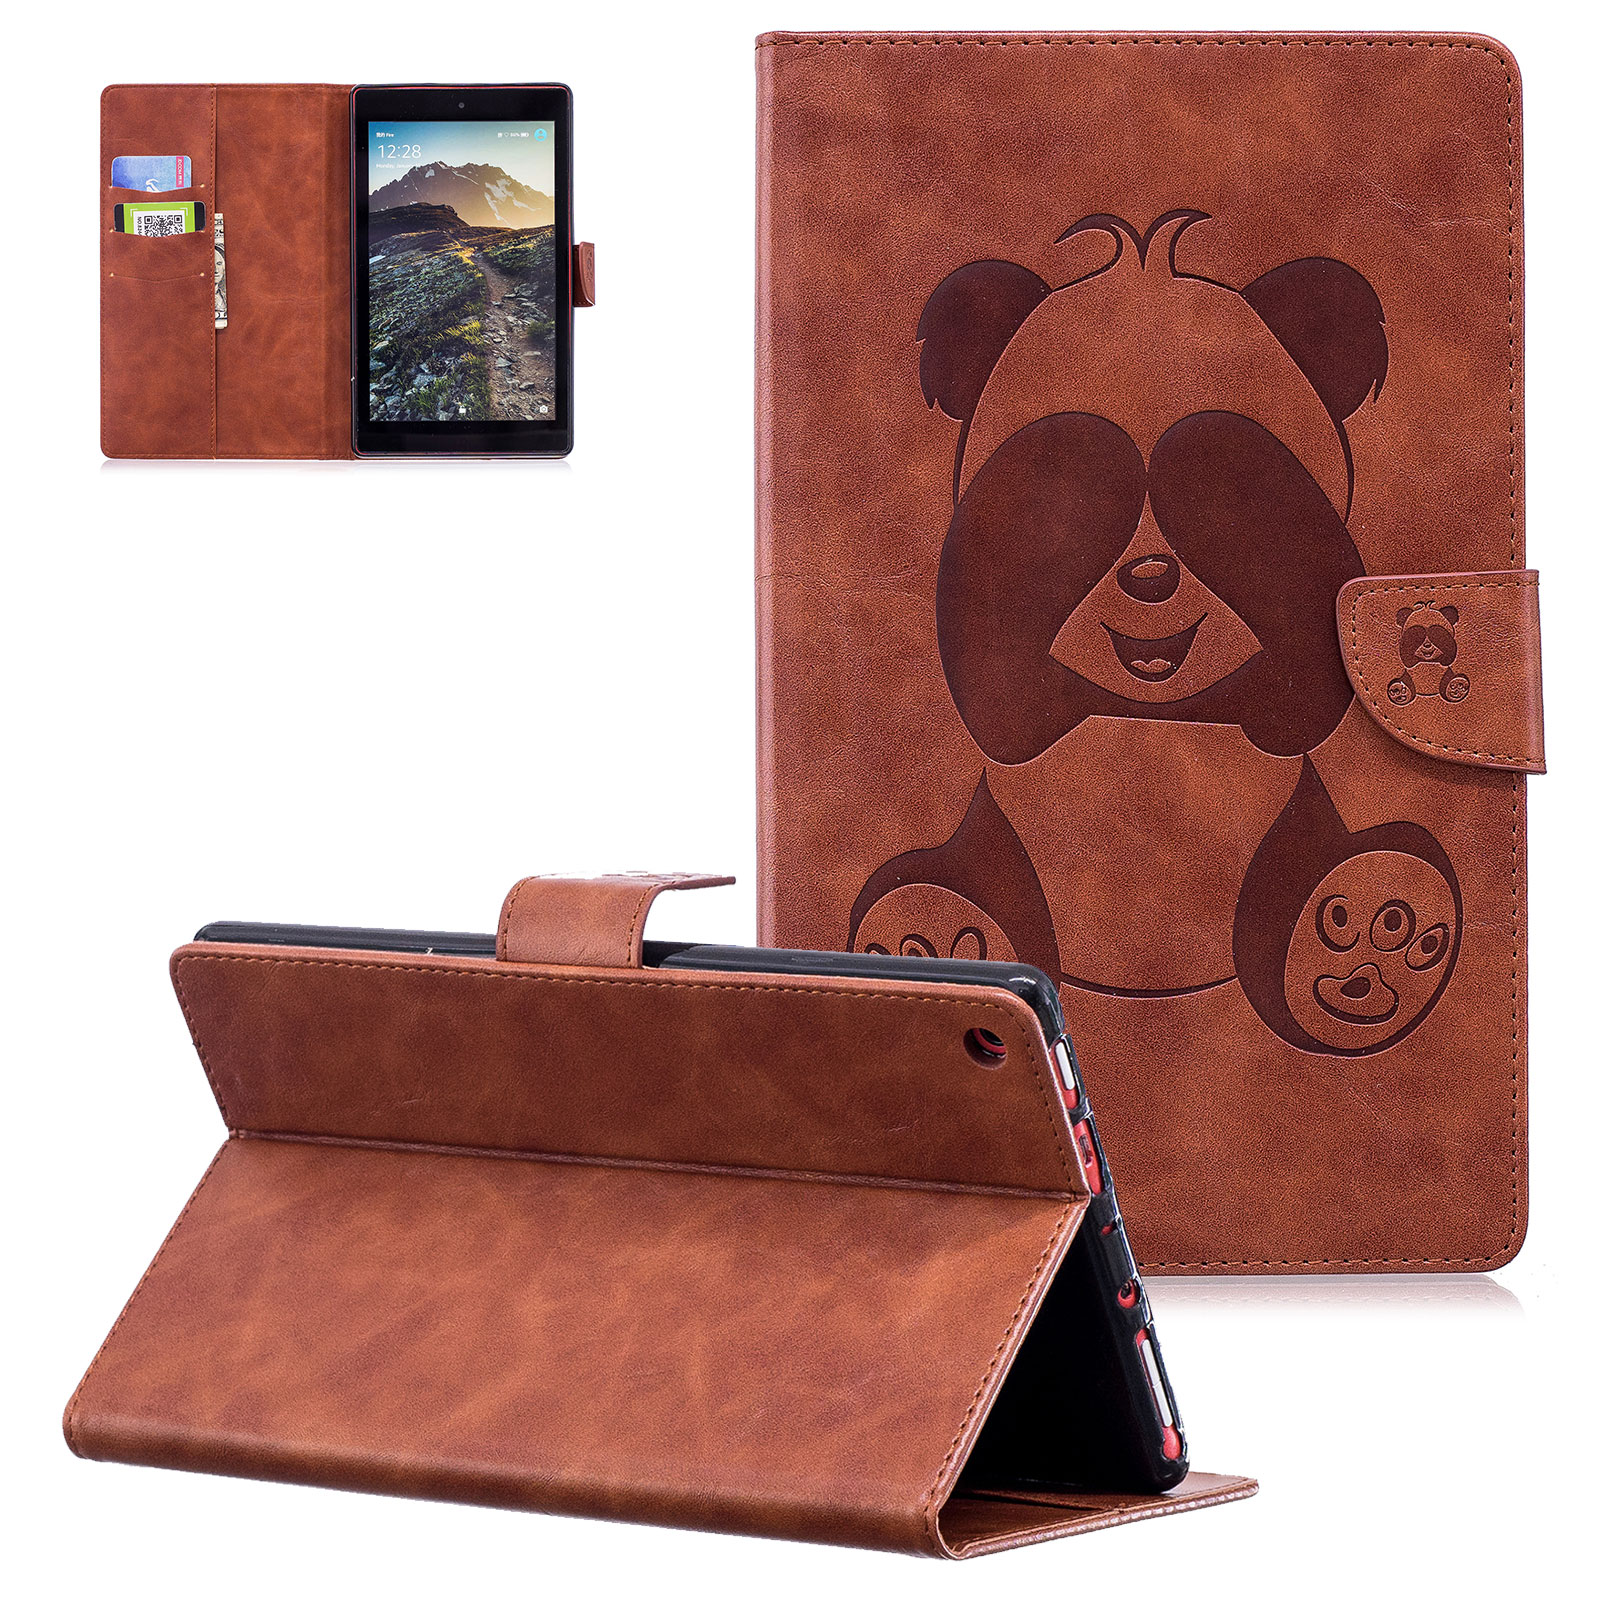 Fire HD 8 2017 2016 2015 Wallet Case,Goodest [Panda Series] [Auto Wake/Sleep] PU Leather Flip Stand Protective Cover for Amazon Fire HD 8 Tablet (7th/ 6th/ 5th Generation,2017/ 2016/ 2015), Brown